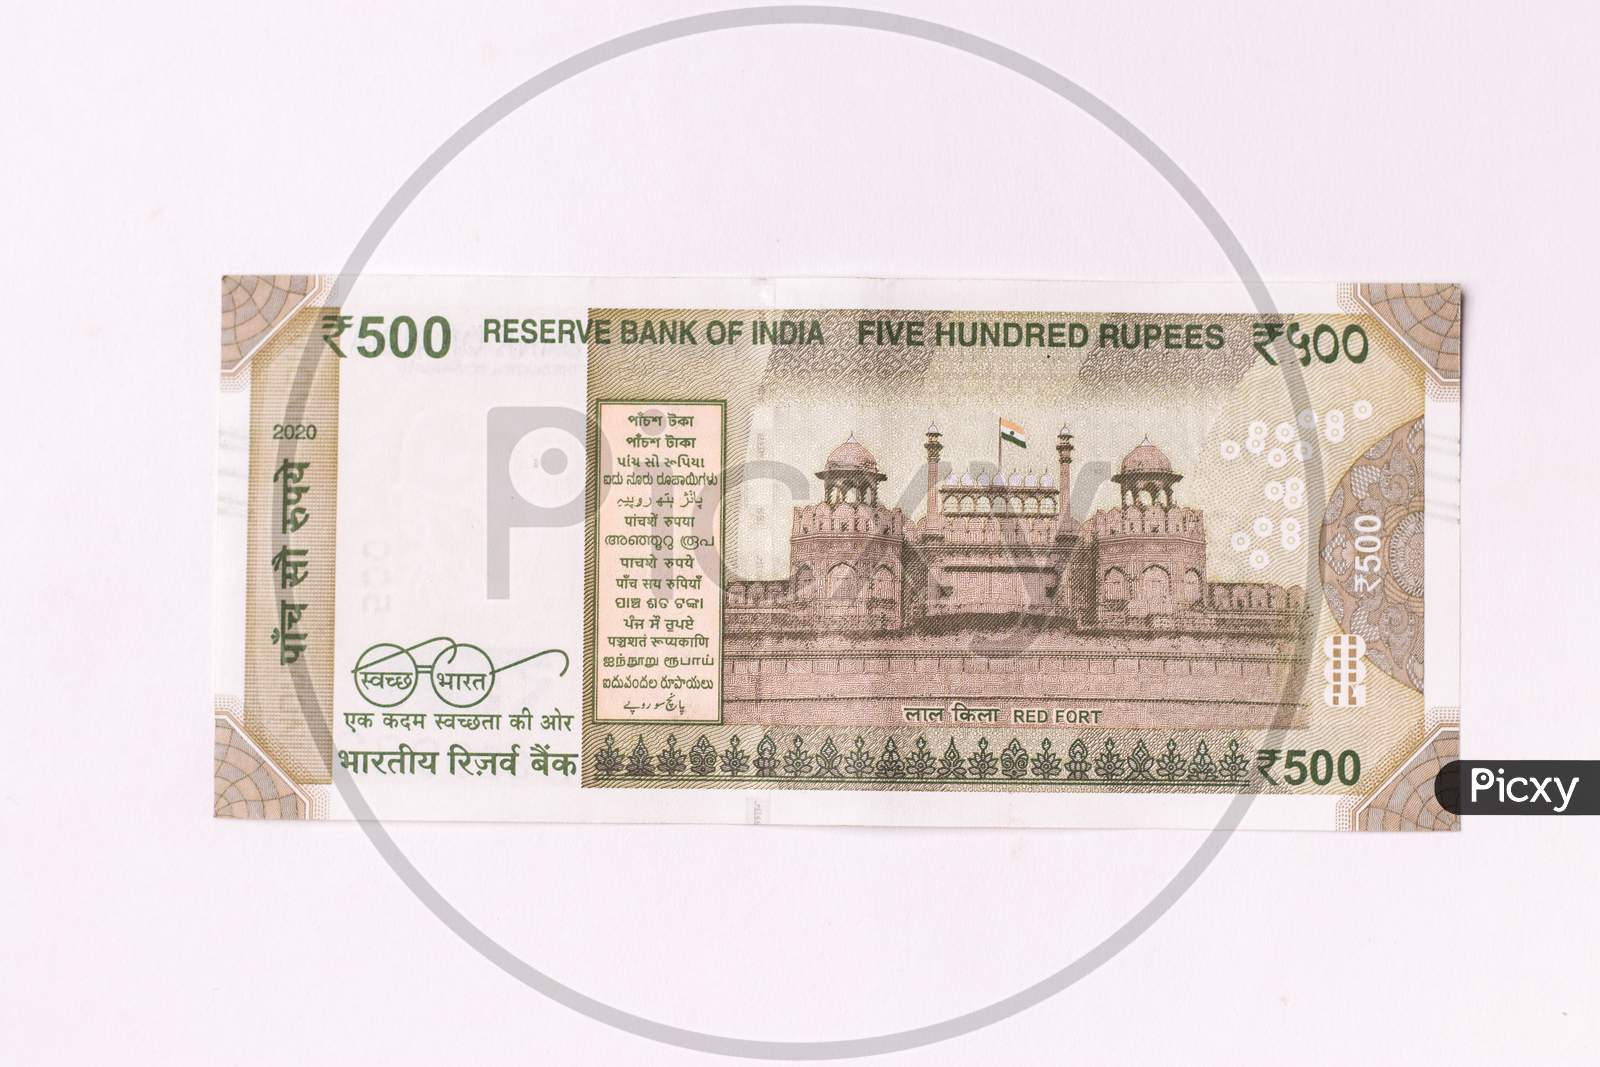 Assam, india - March 30, 2021 : Indian new 500 Rupees note stock image.